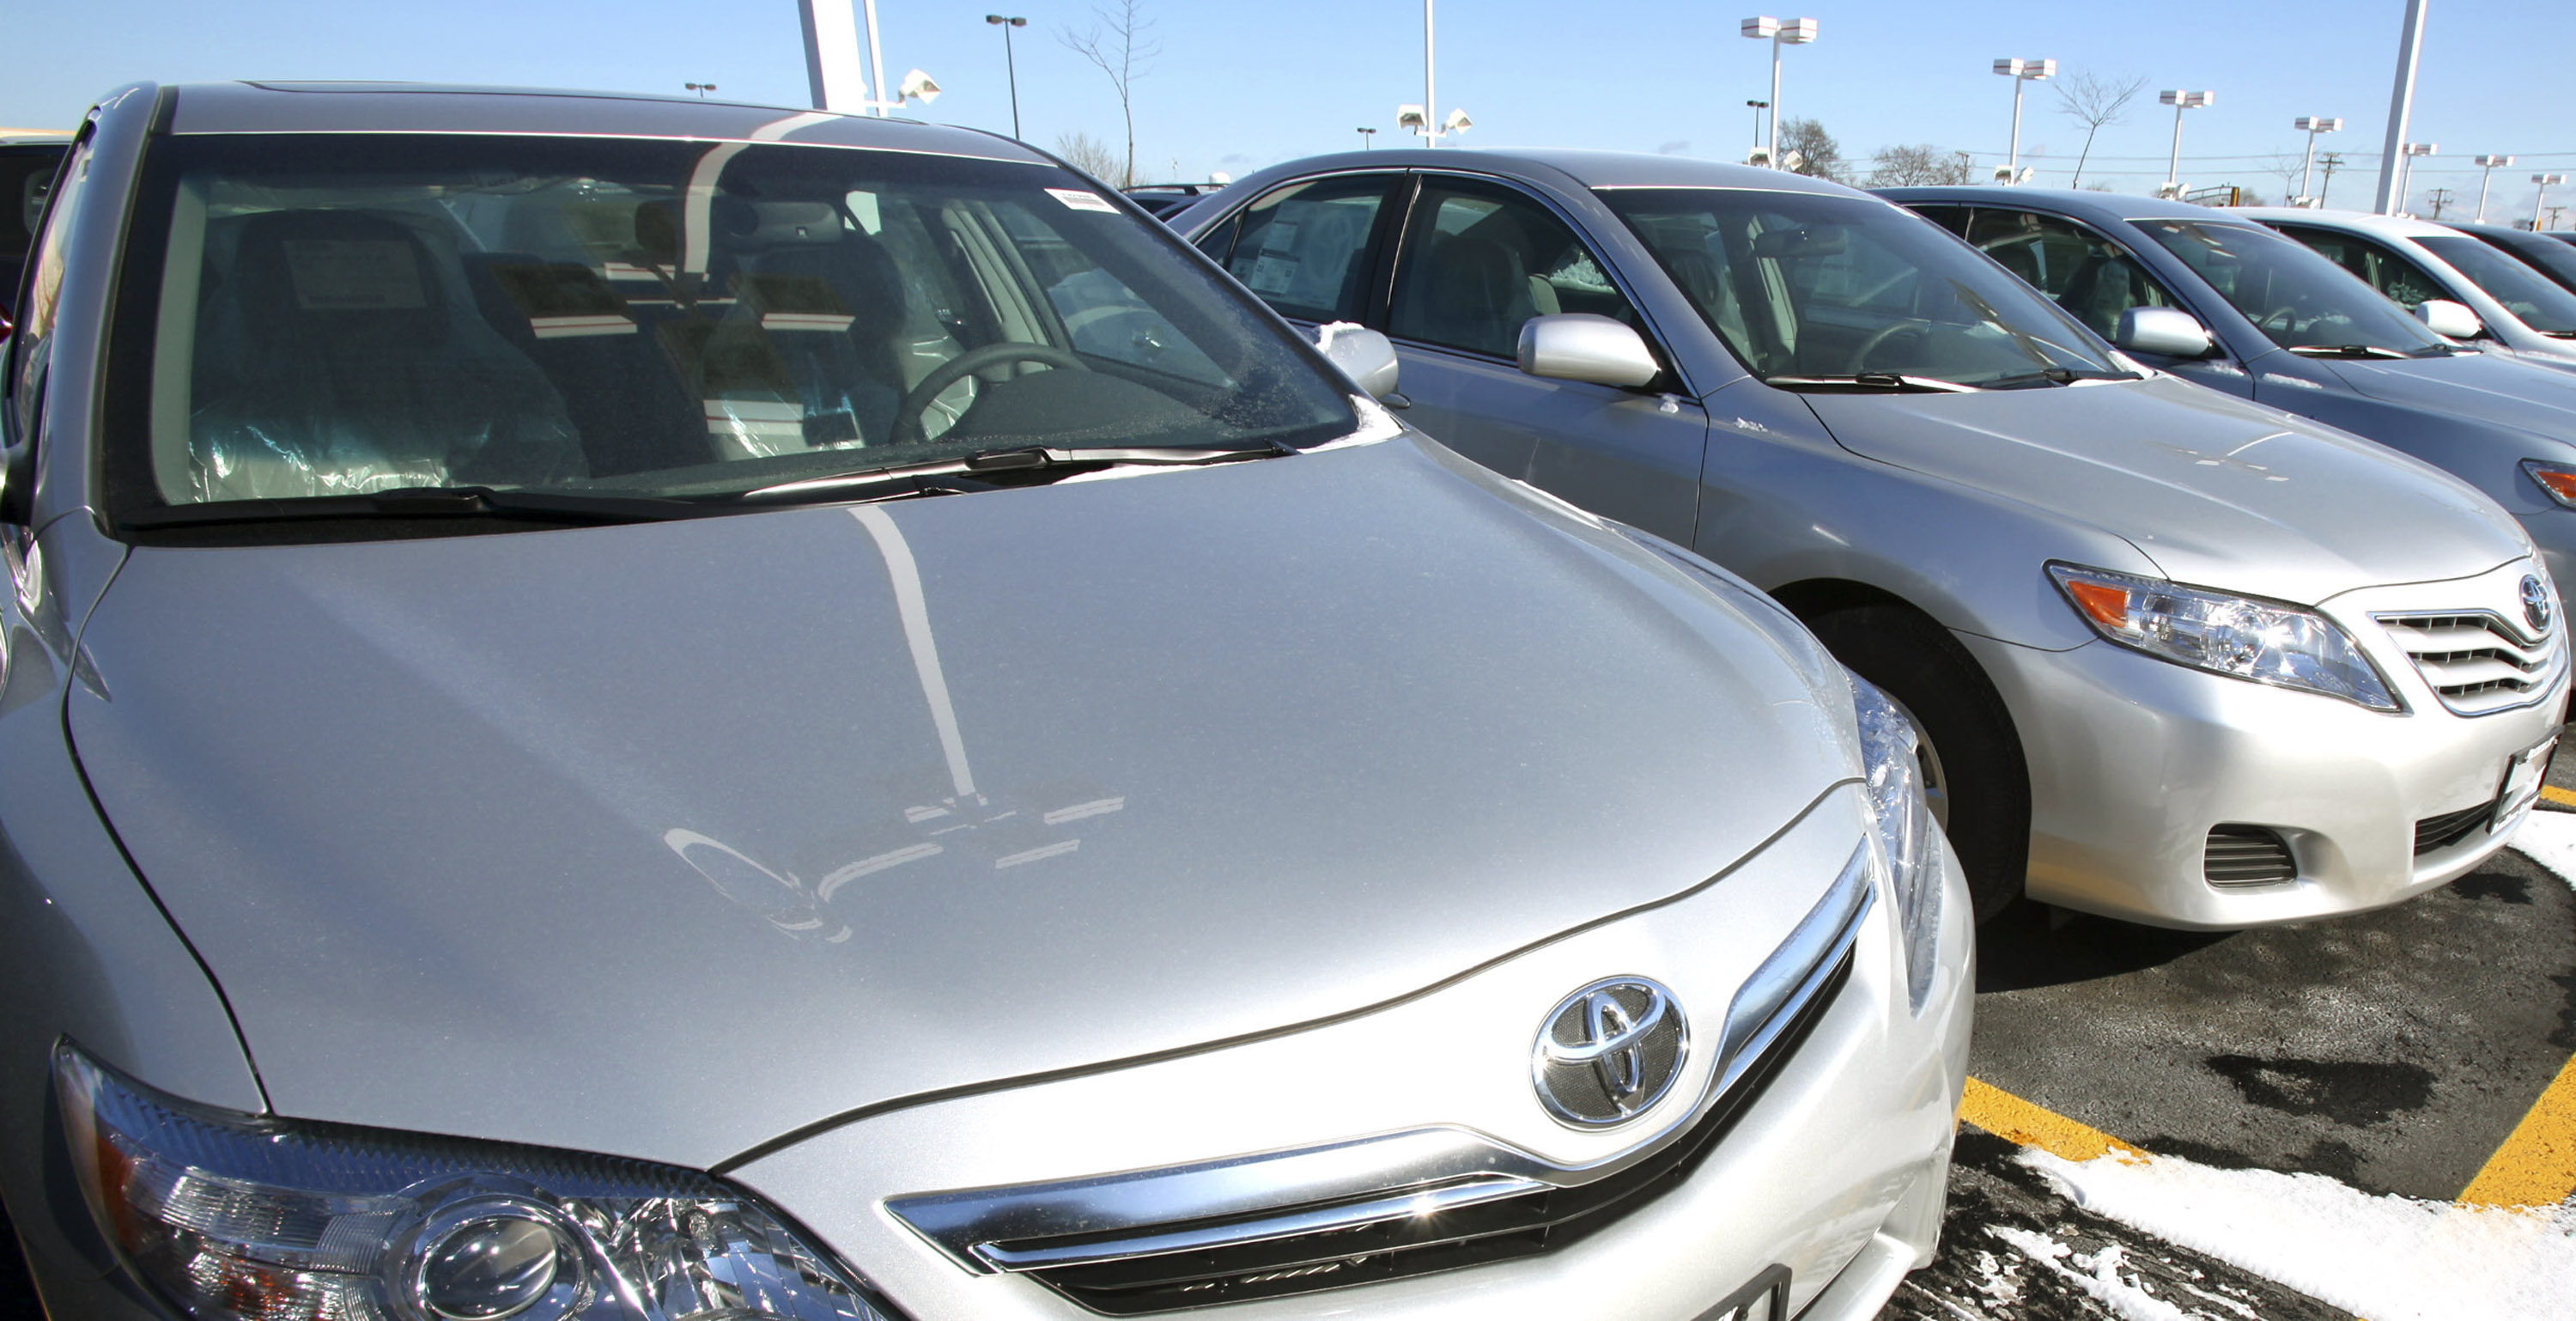 Toyota Camrys sit on the sales lot at Bredemann Toyota in Park Ridge, Illinois, U.S.